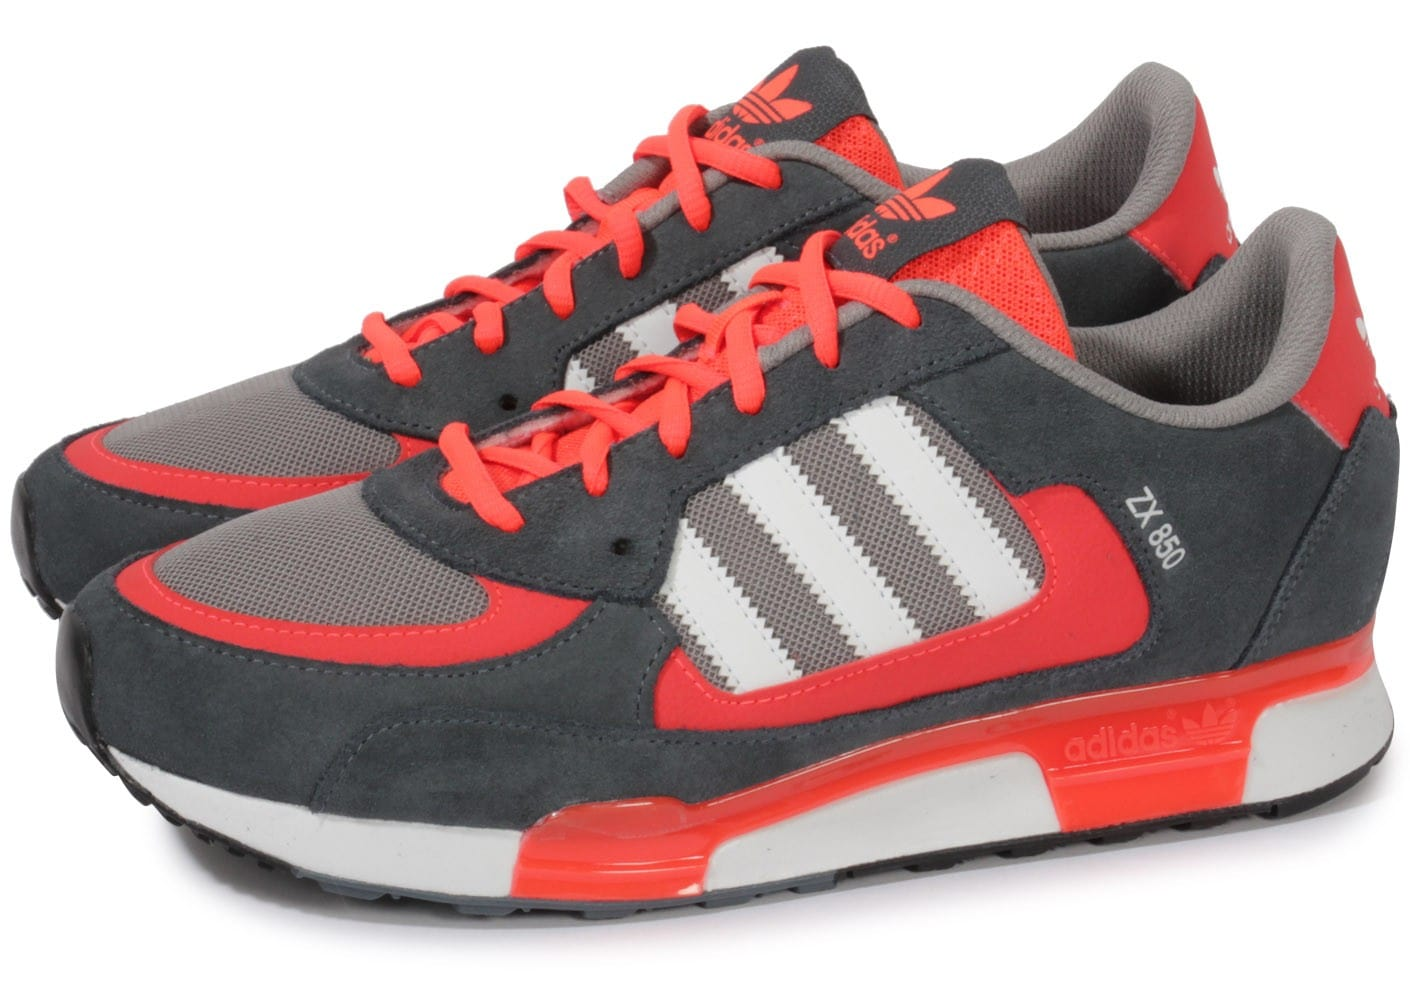 adidas Zx 850 Grise Chaussures Baskets homme Chausport